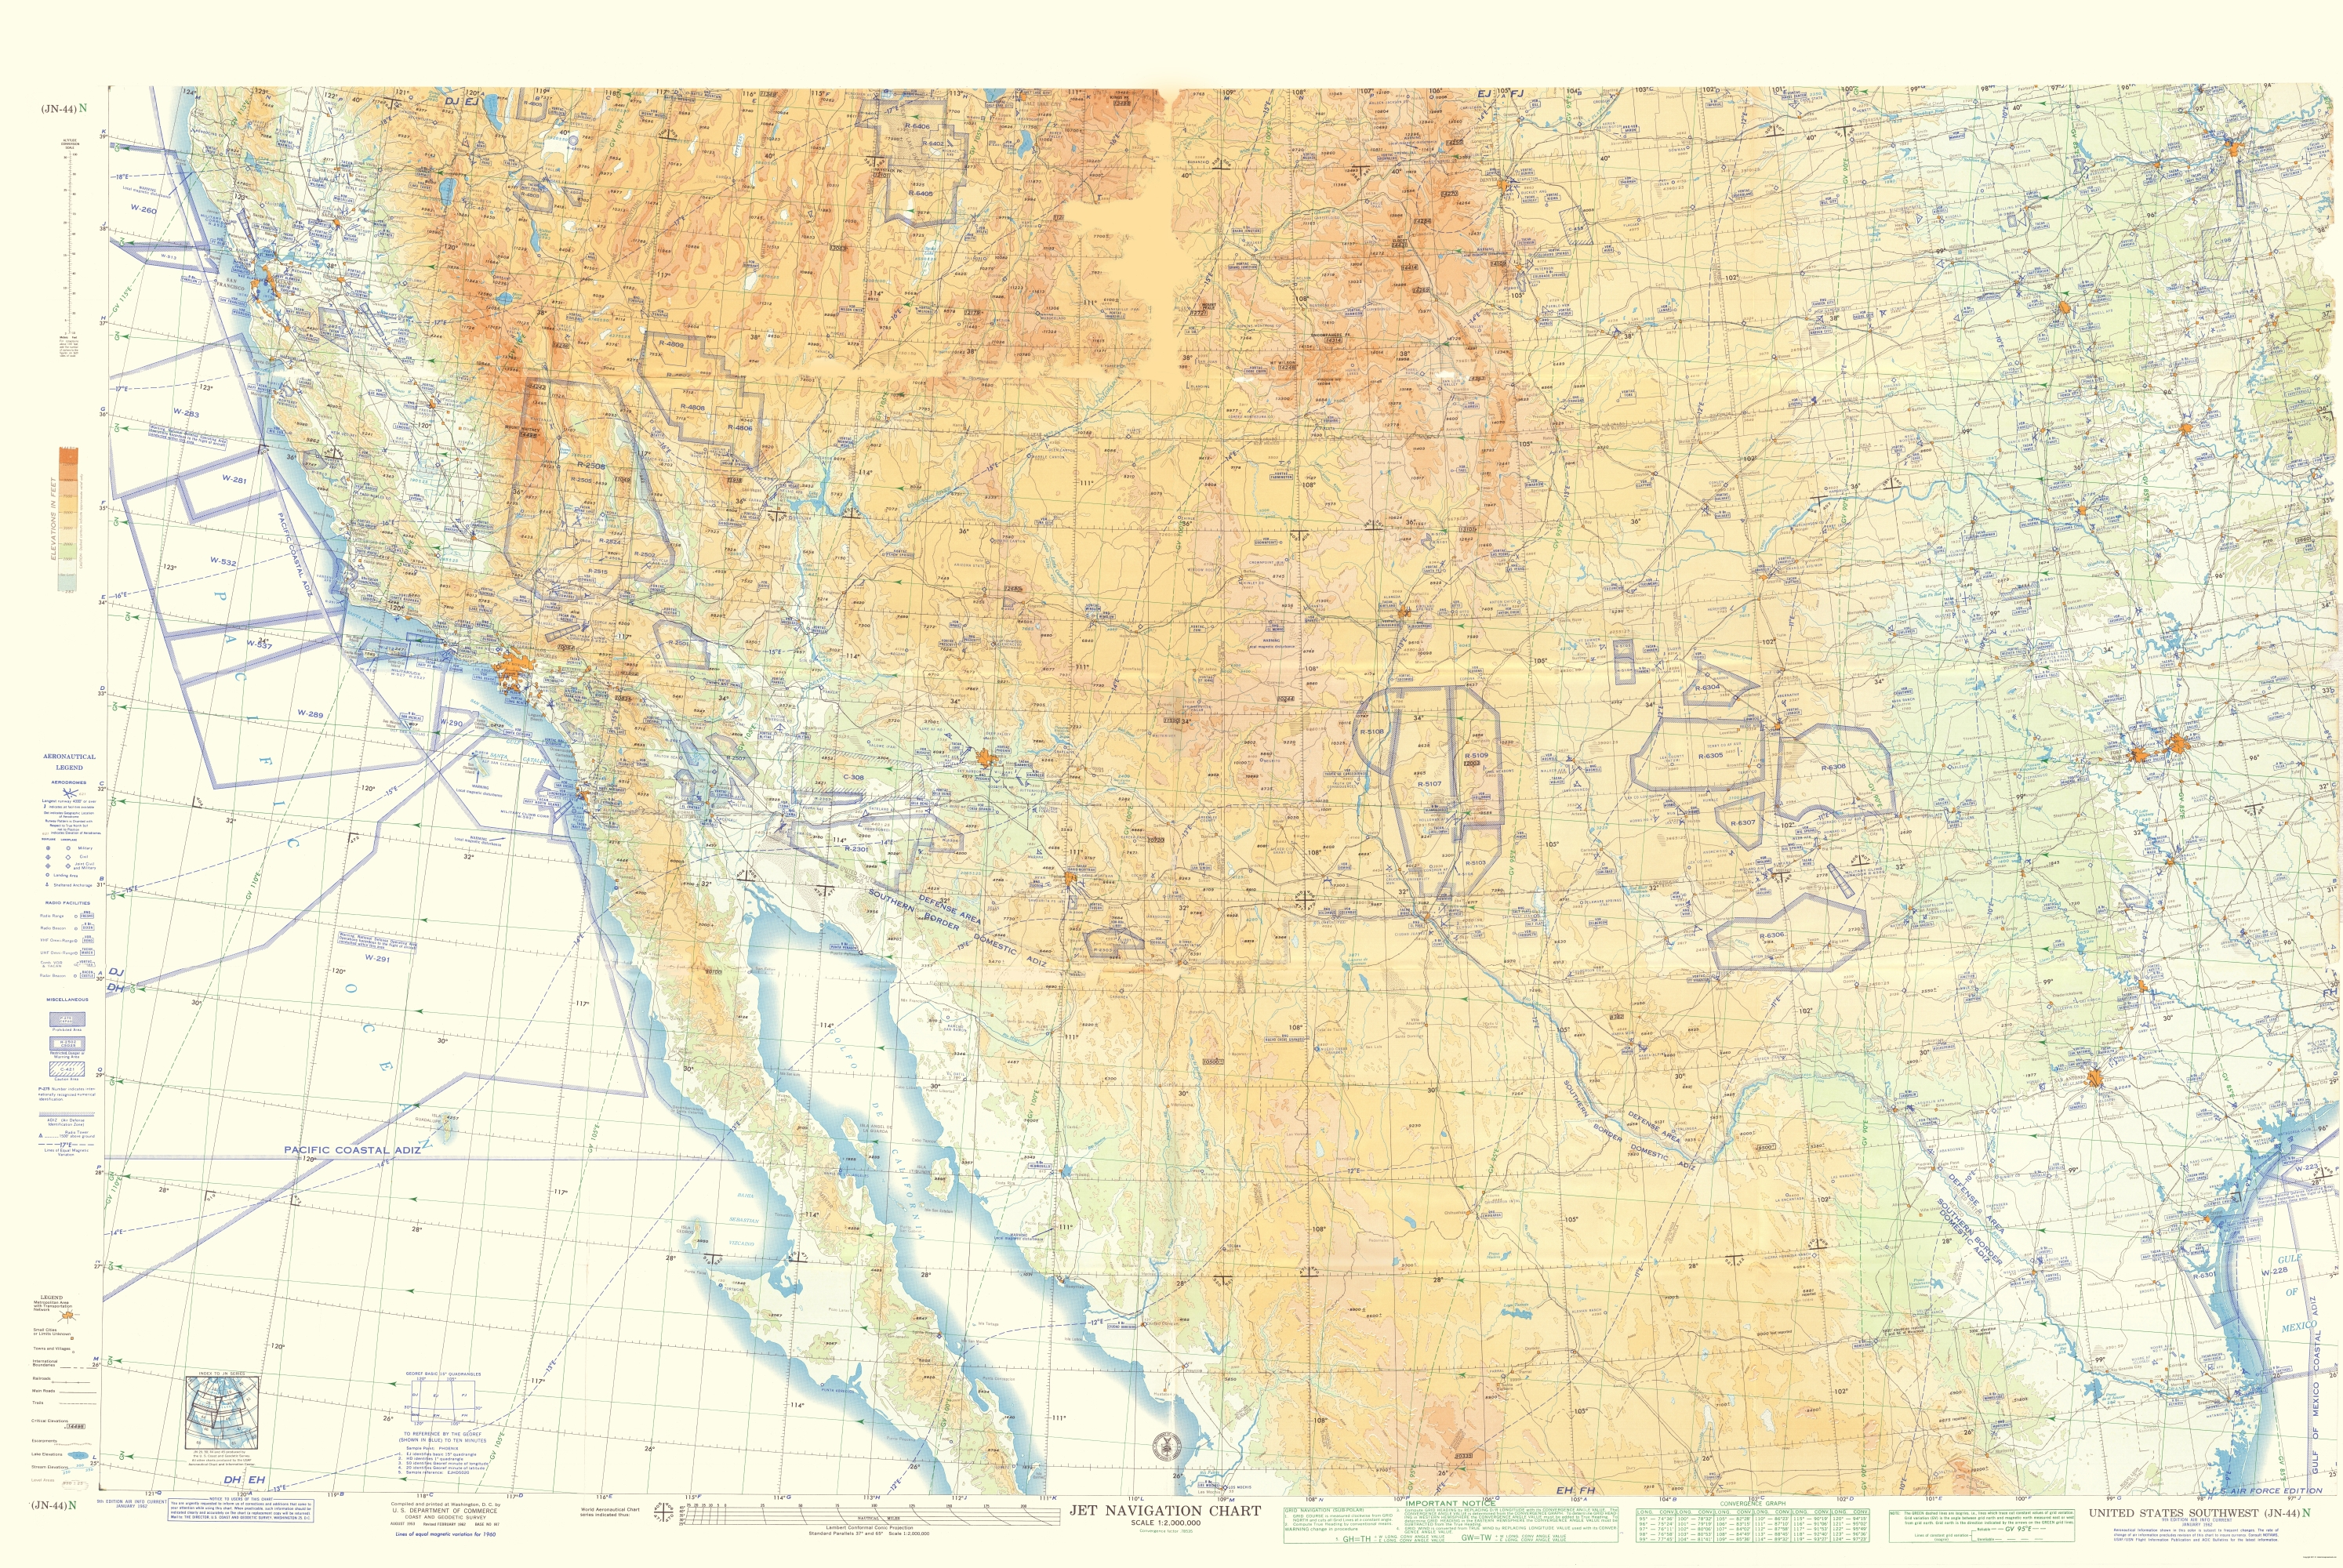 Old Topographical Map Southwest United States 1962 - Southwest-map-us